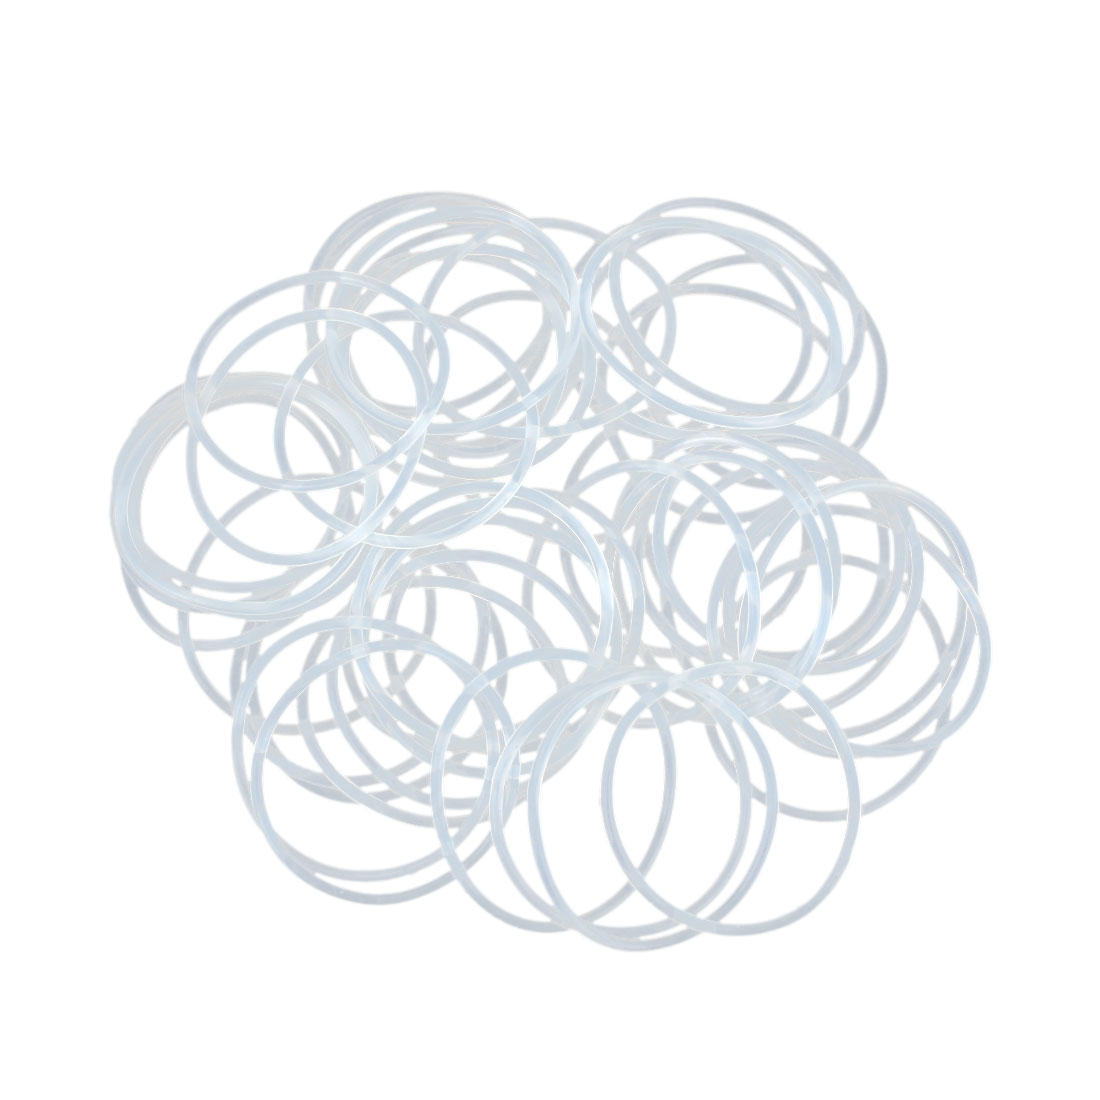 50pcs White Silicone Rubber O-Ring Seal Gasket Washer 32 x 1.5mm for Car